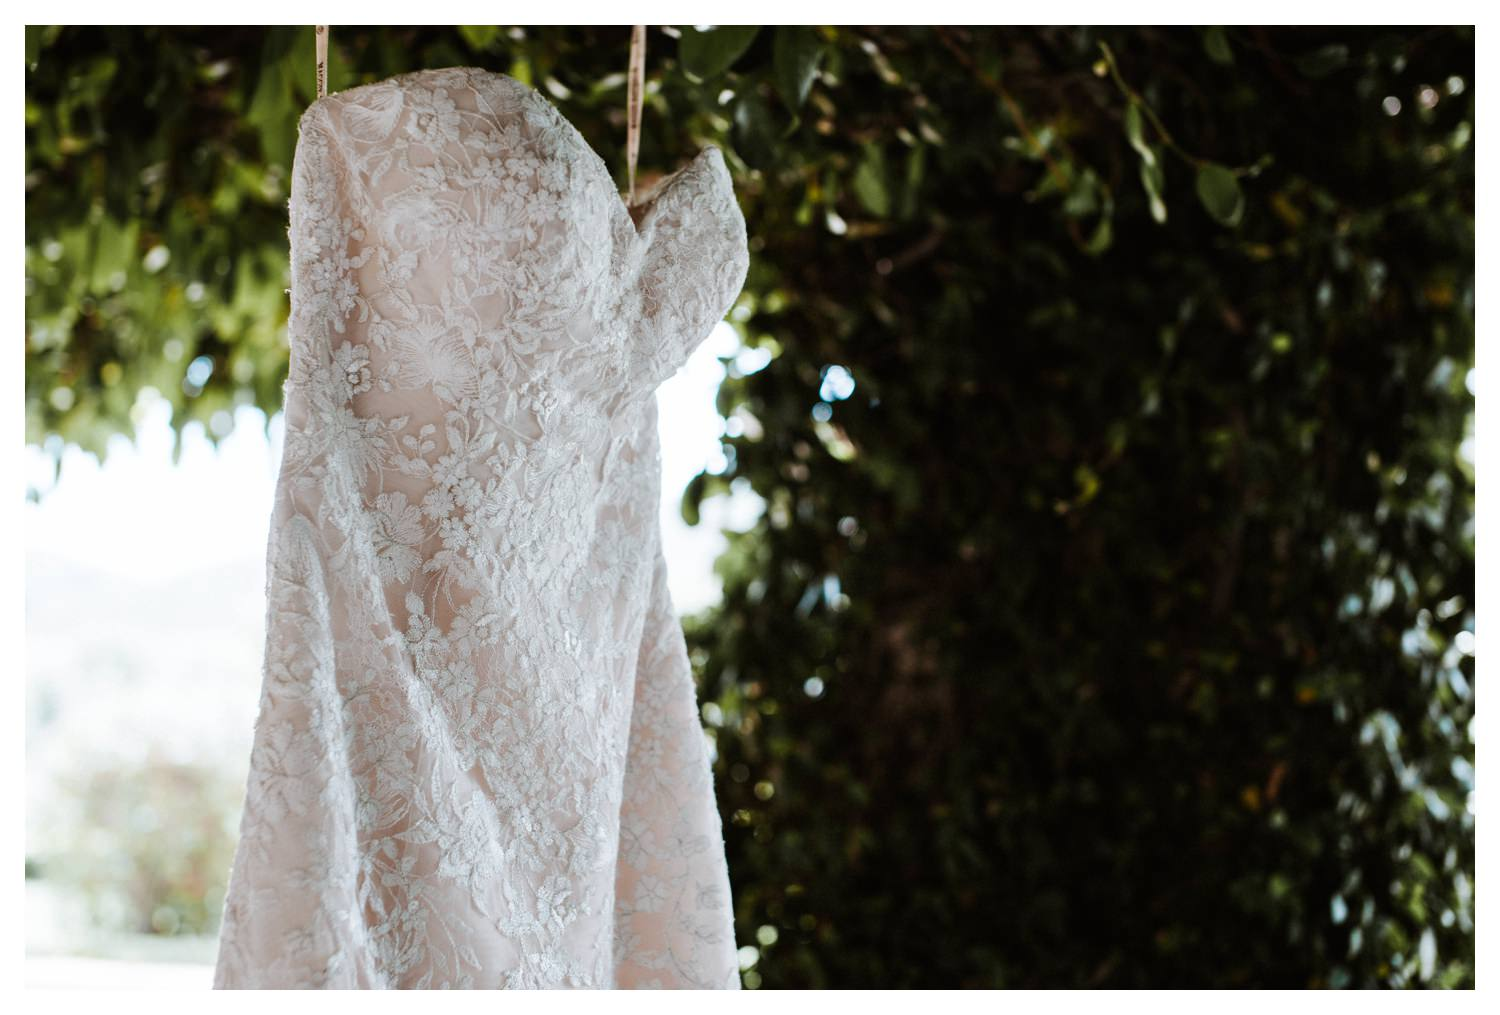 Details of a wedding dress against a green ivy wall